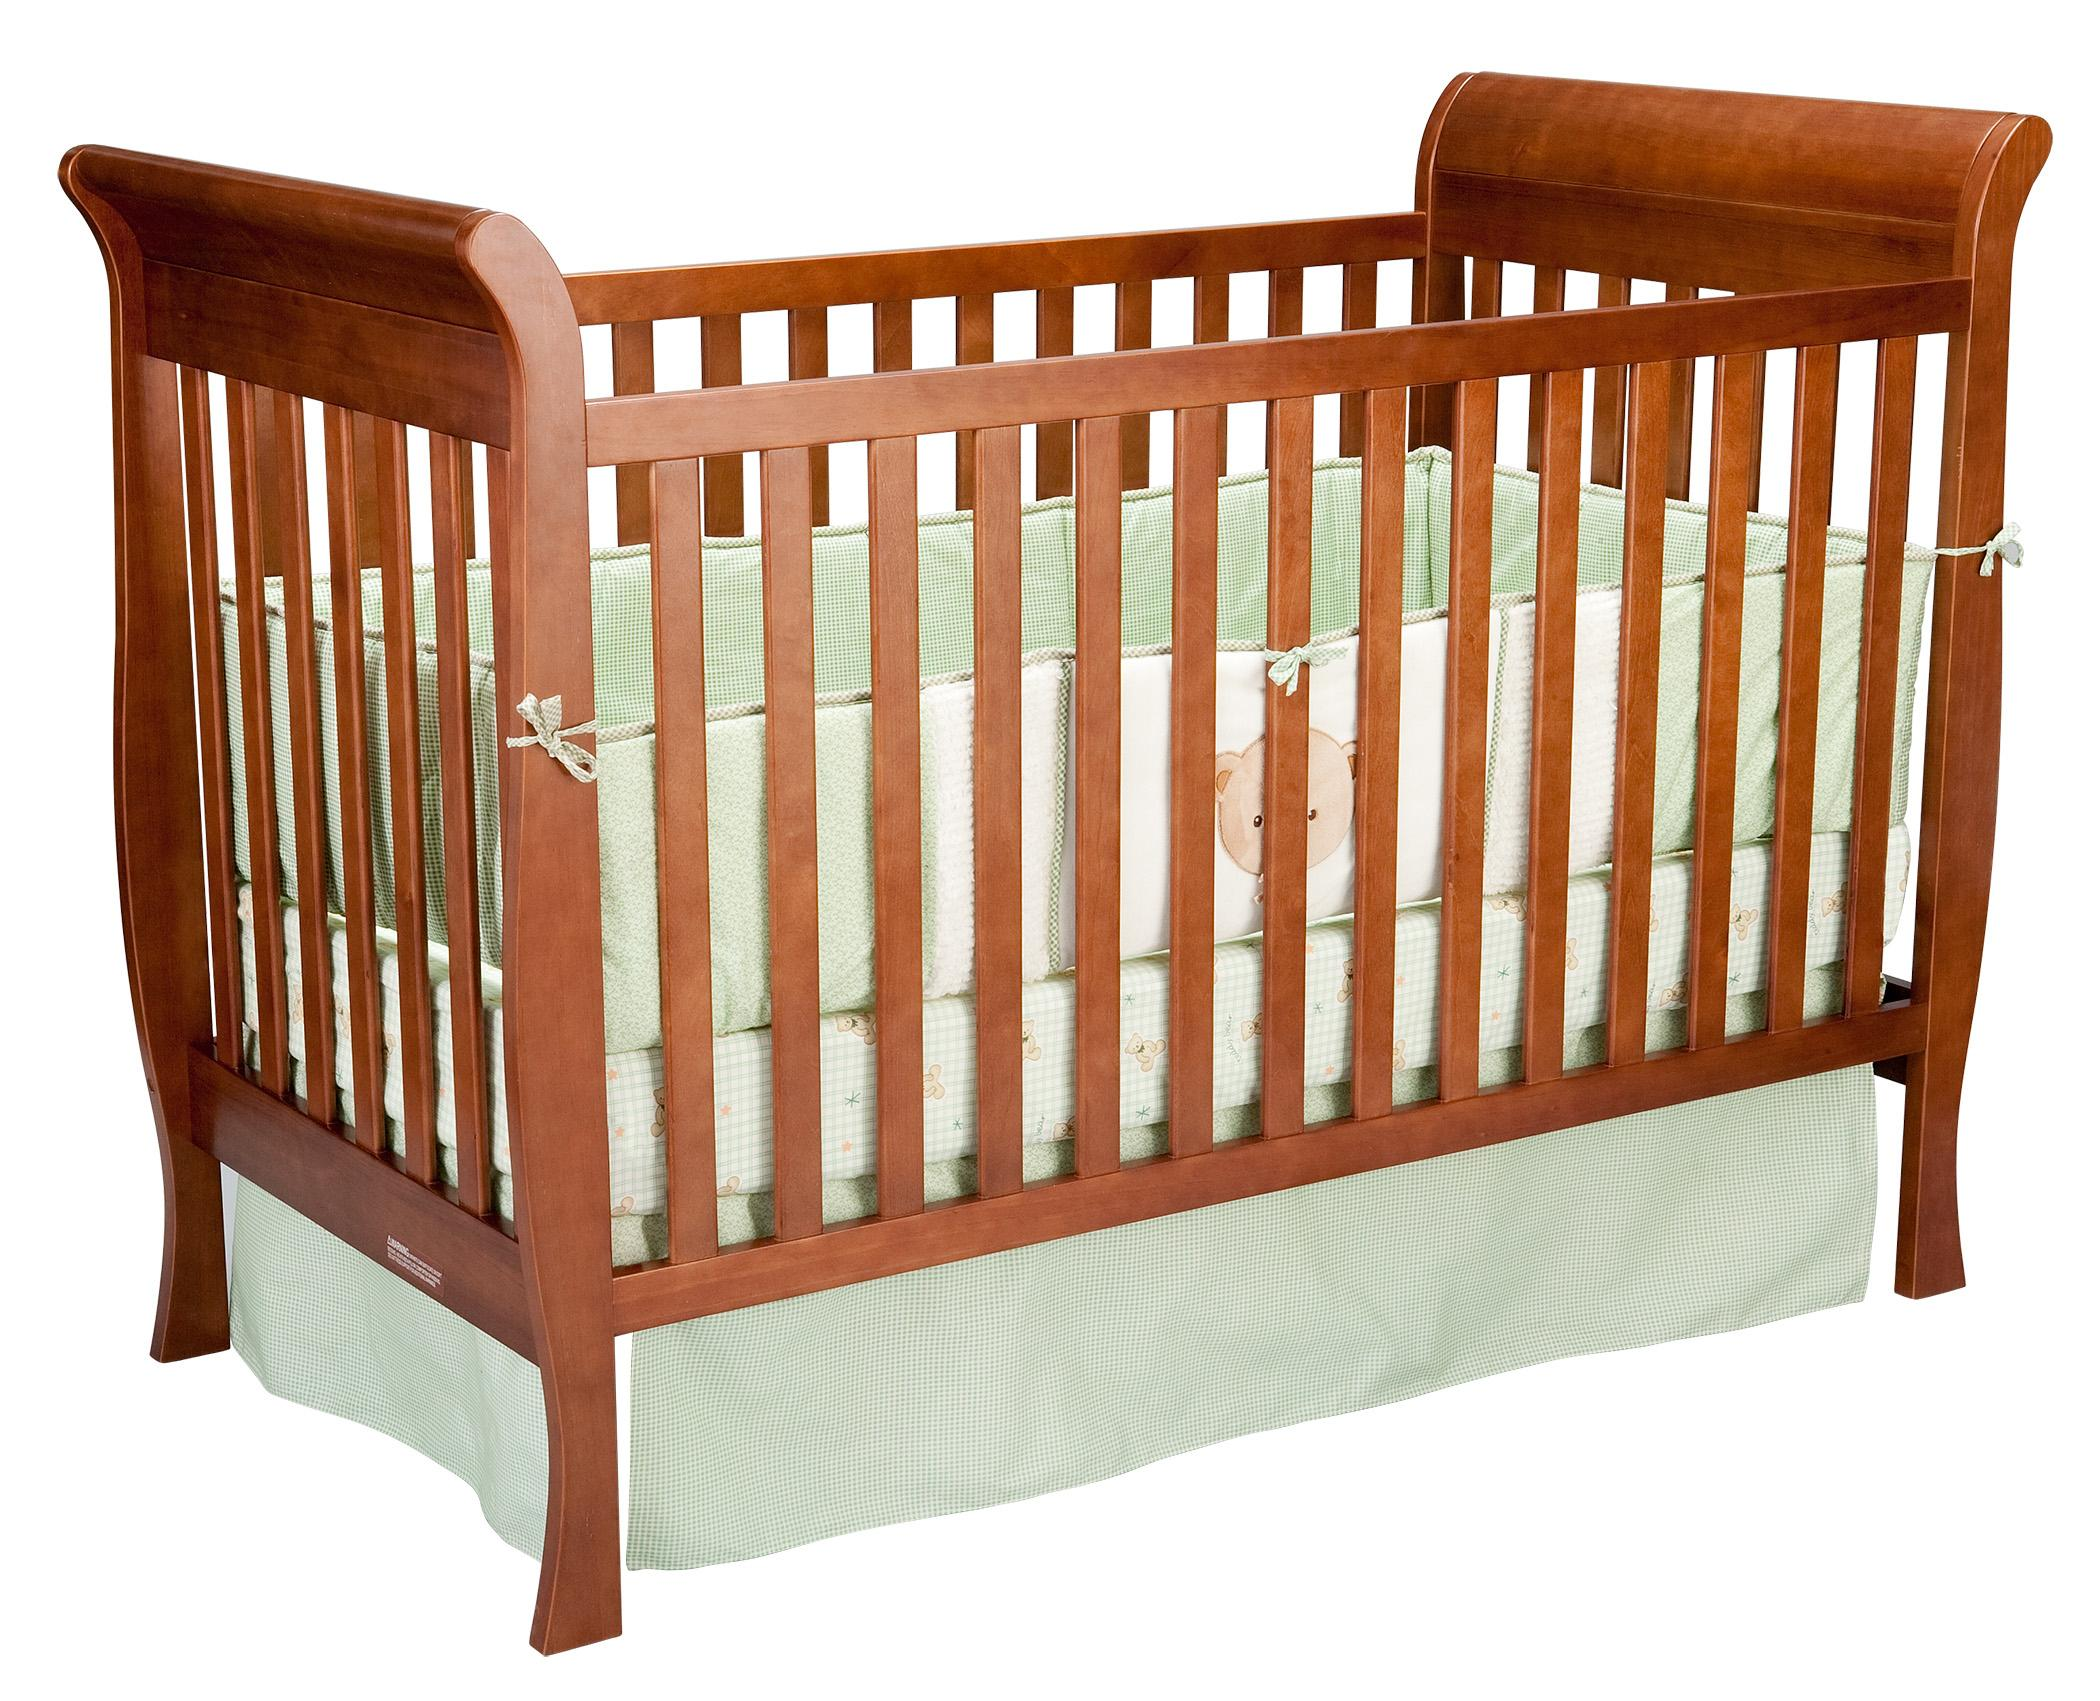 Glenwood Sleigh Crib by Delta Children's Products at Arwood's Furniture